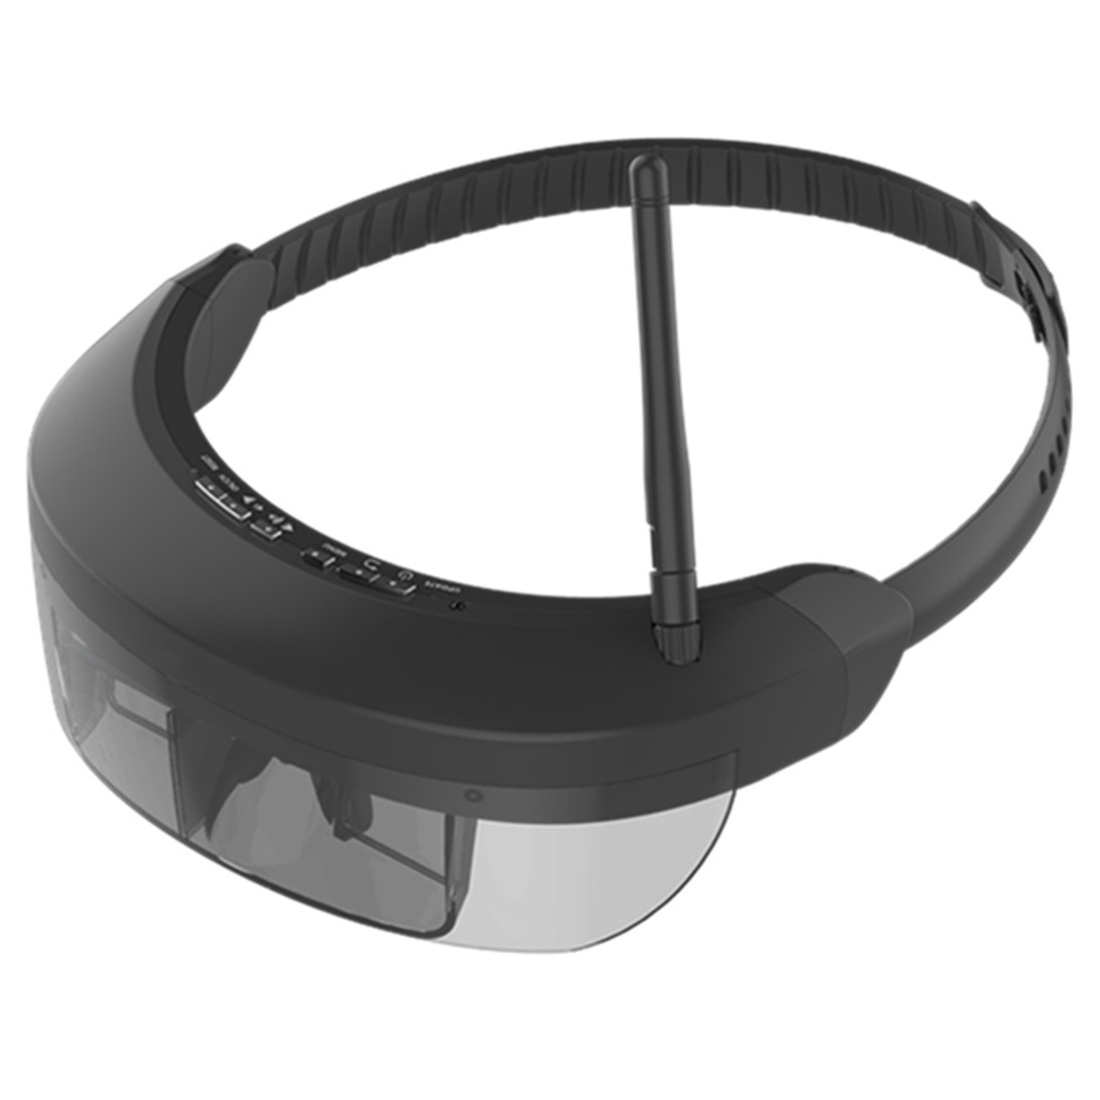 Top Deals Wireless FPV 3D Video Glasses Vision 730S with 5.8G 40CH 98 inch Display Private Virtual Theater for FPV Qua